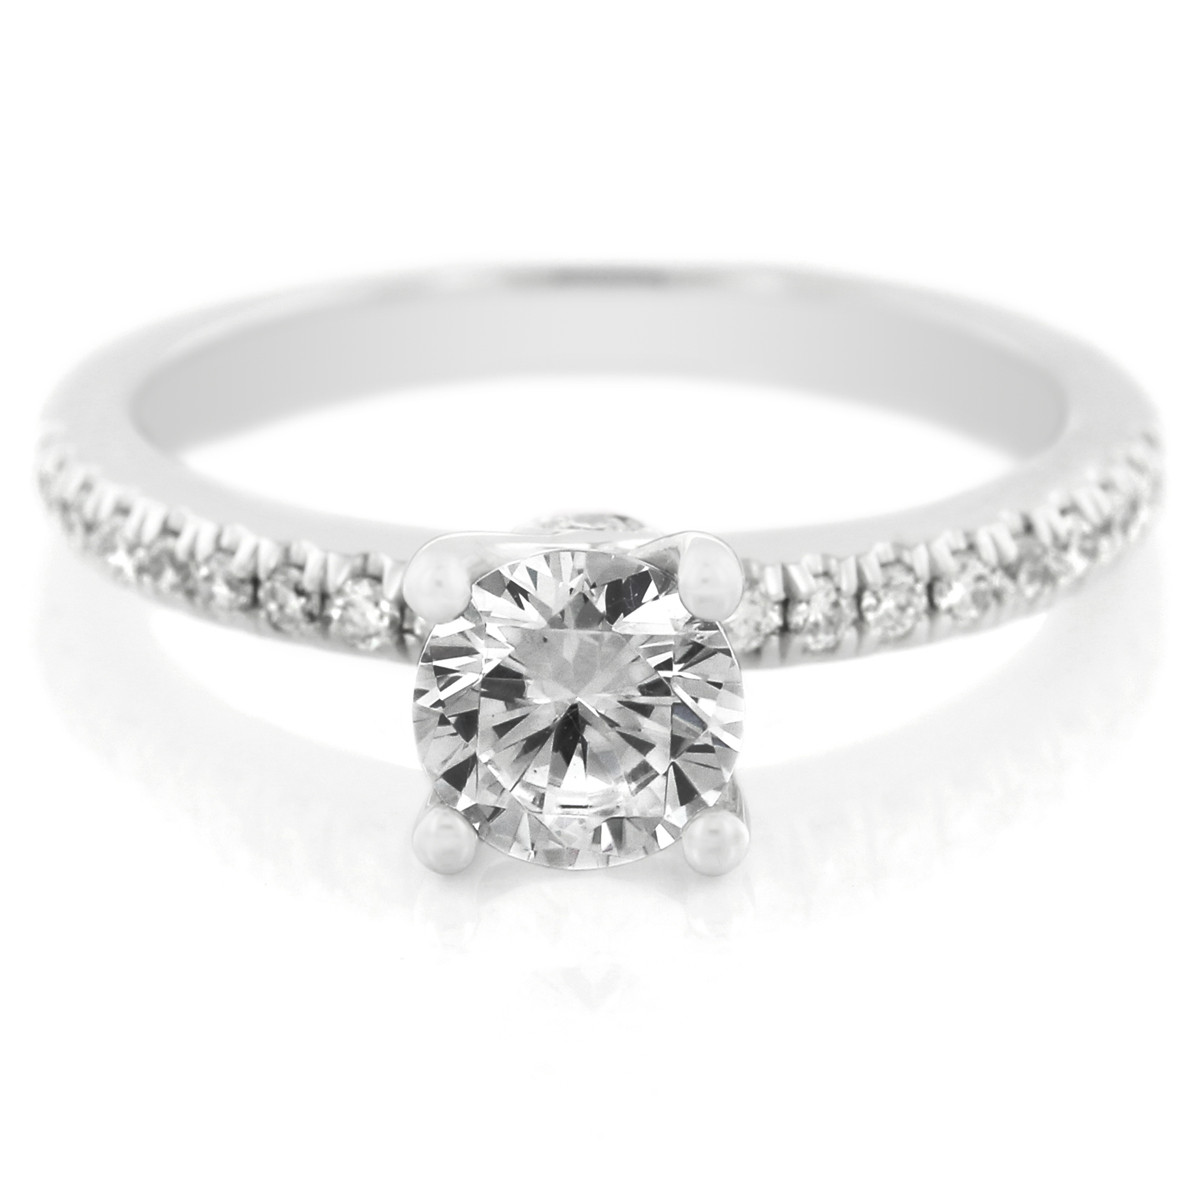 Platinum Four Prong Pave Diamond Engagement Ring with Surprise Diamonds